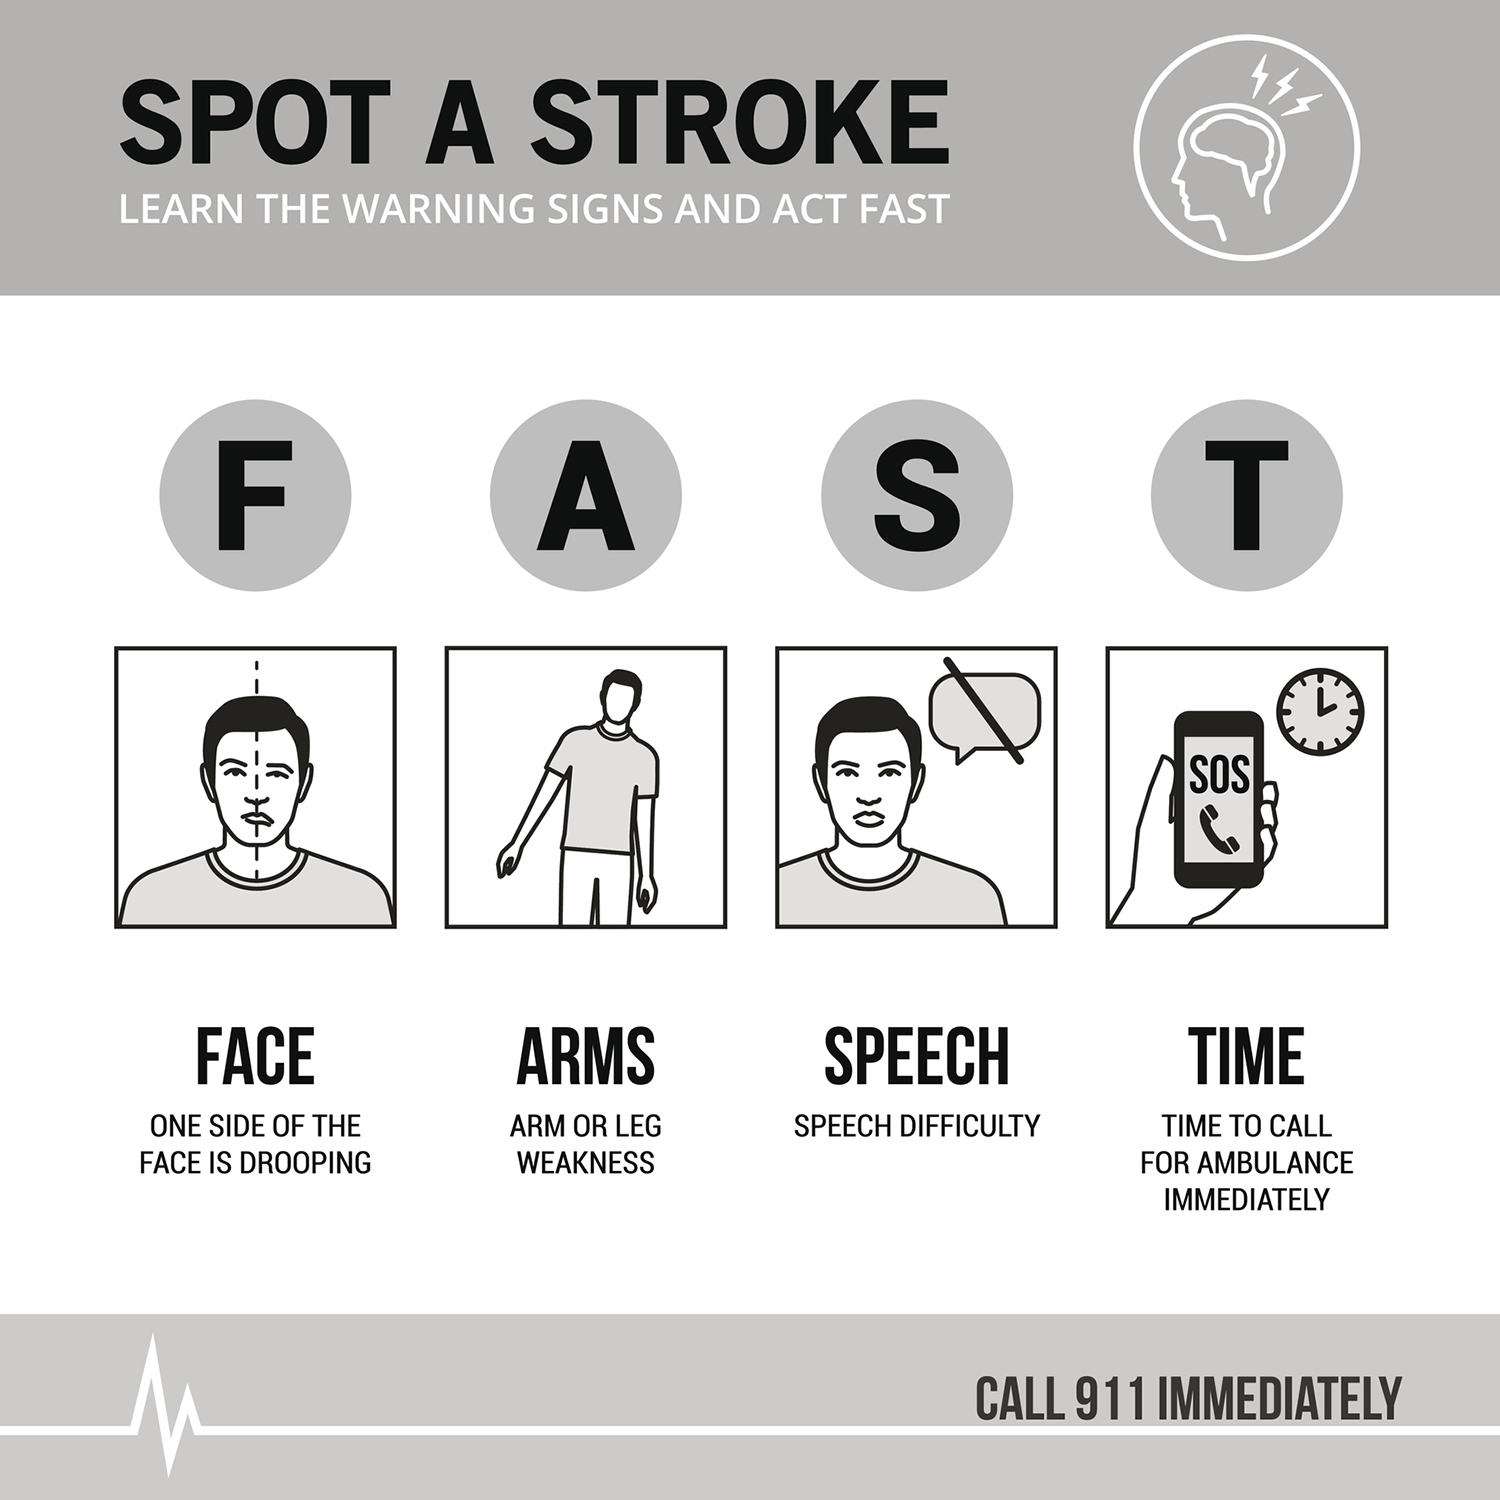 Act FAST to Spot a Stroke